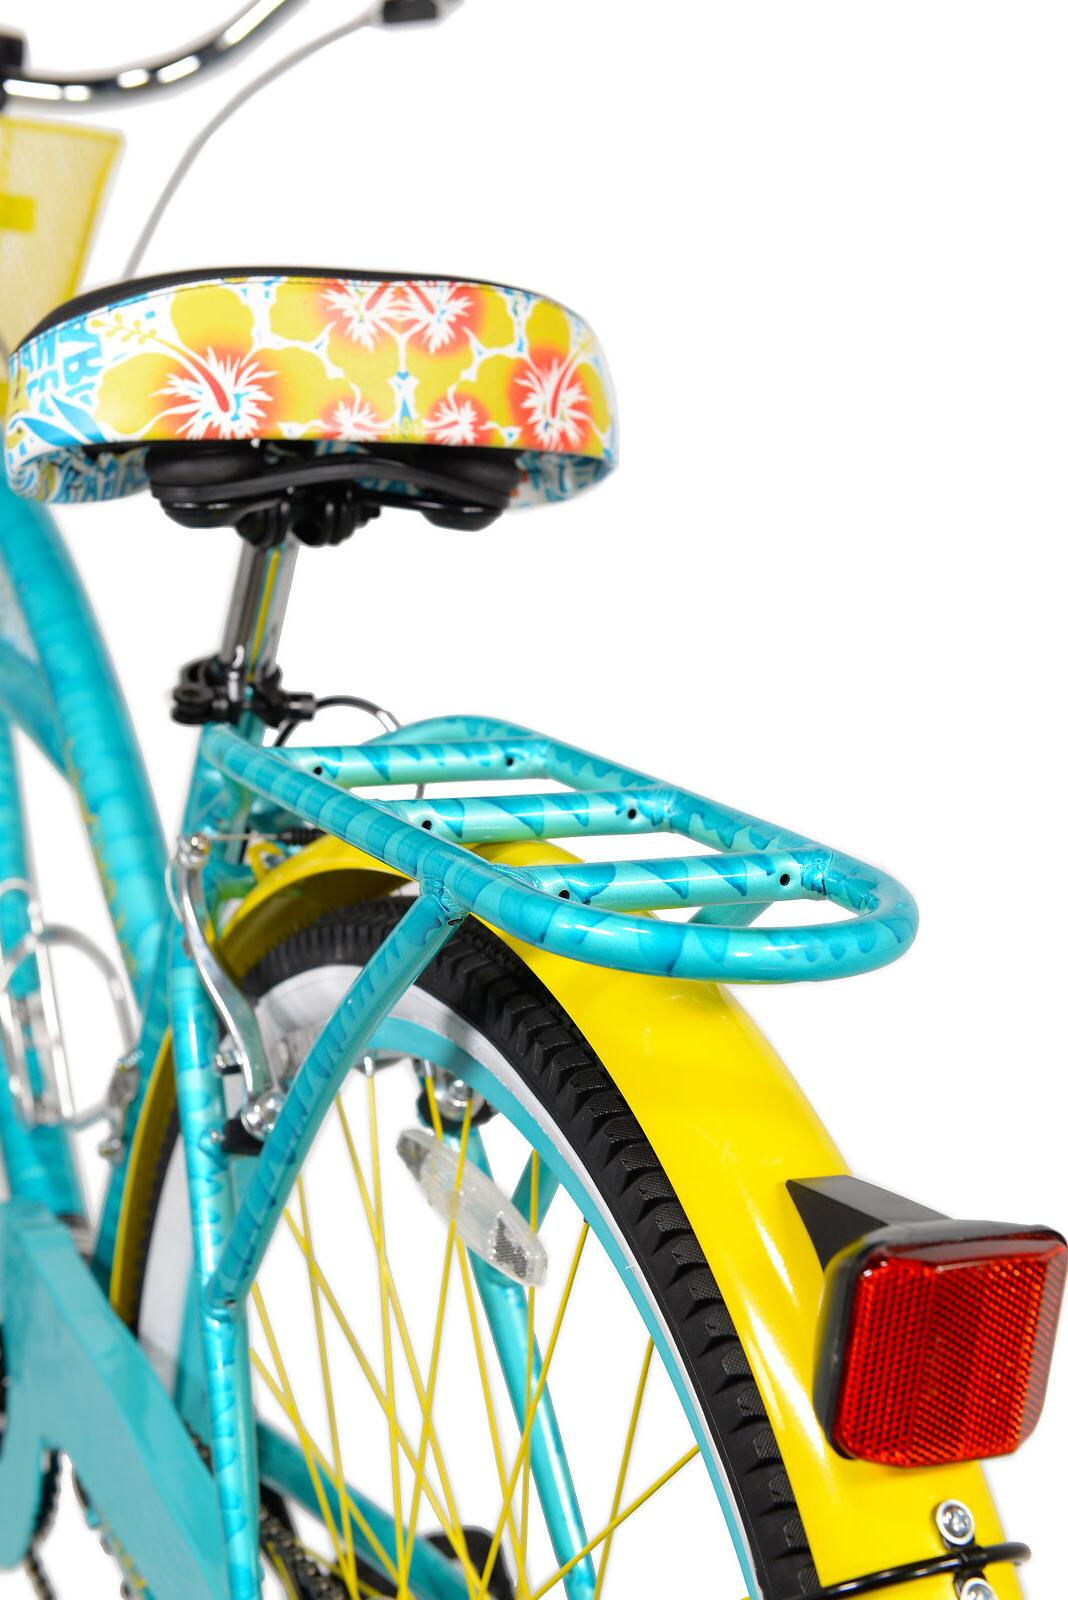 BCA Women's, Multi-Speed Cruiser Bike, Teal